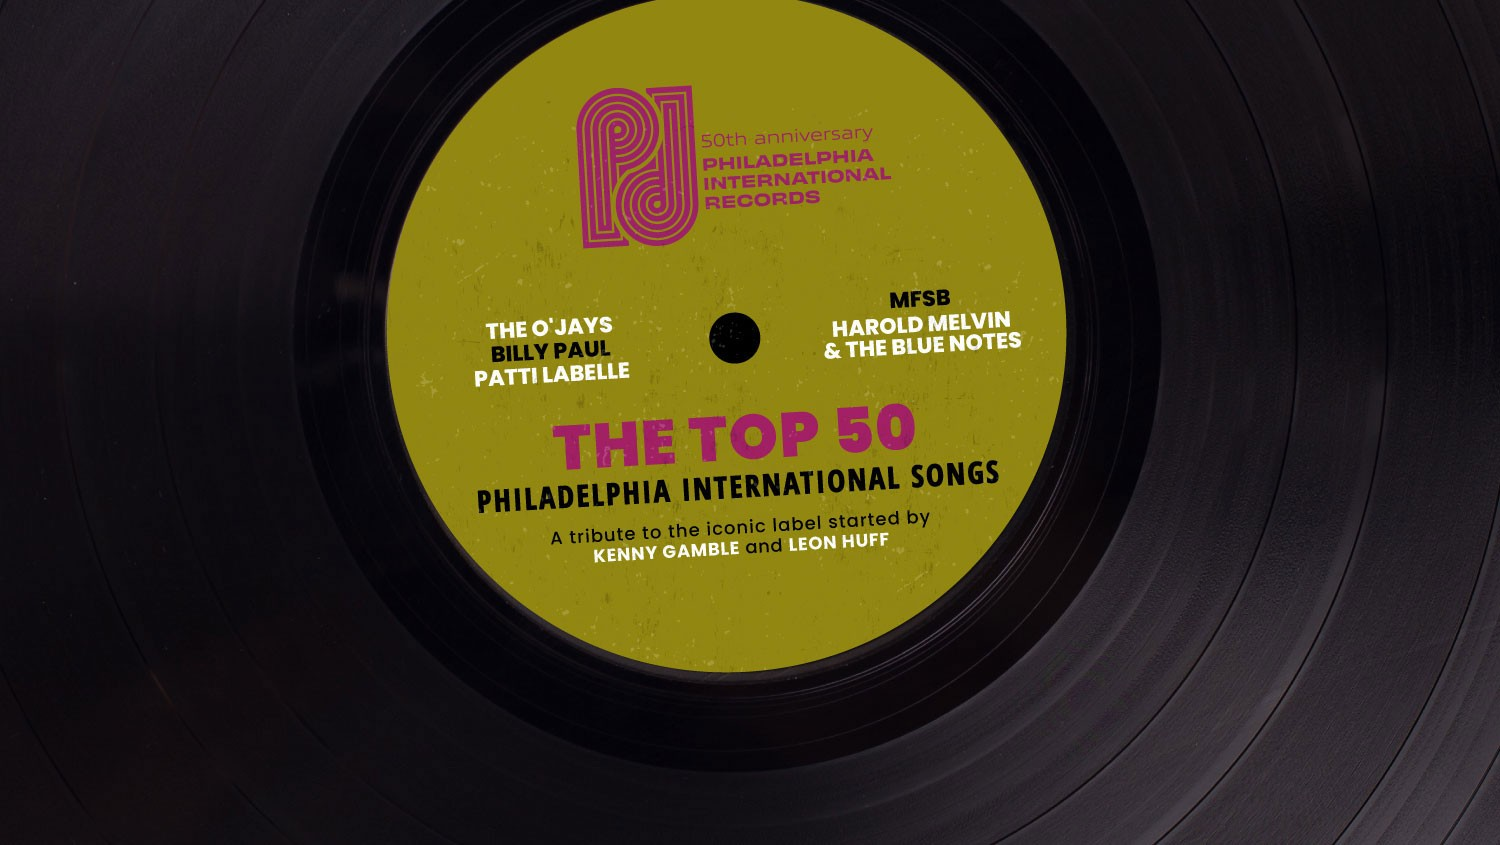 The 50 Greatest Philadelphia International Songs